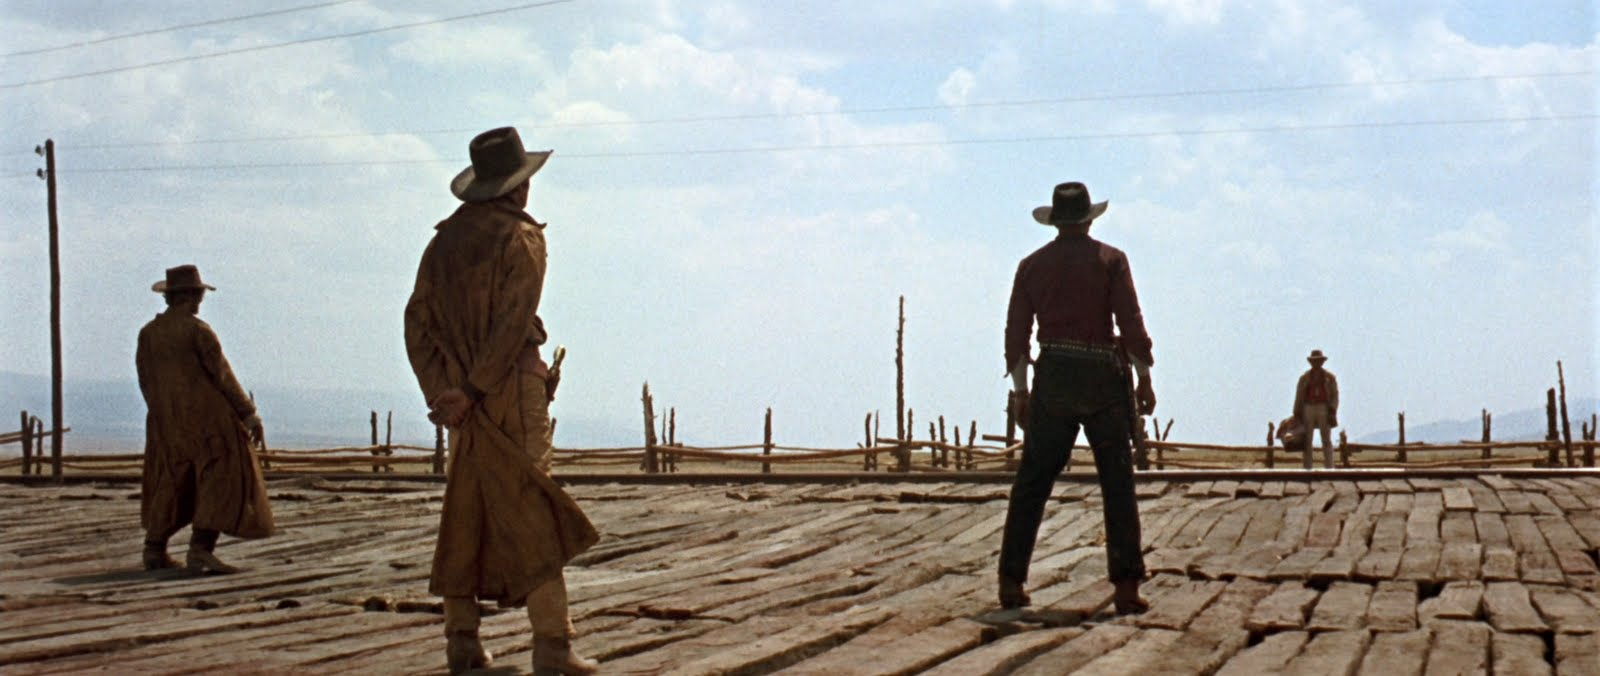 Once-Upon-A-Time-In-The-West-3